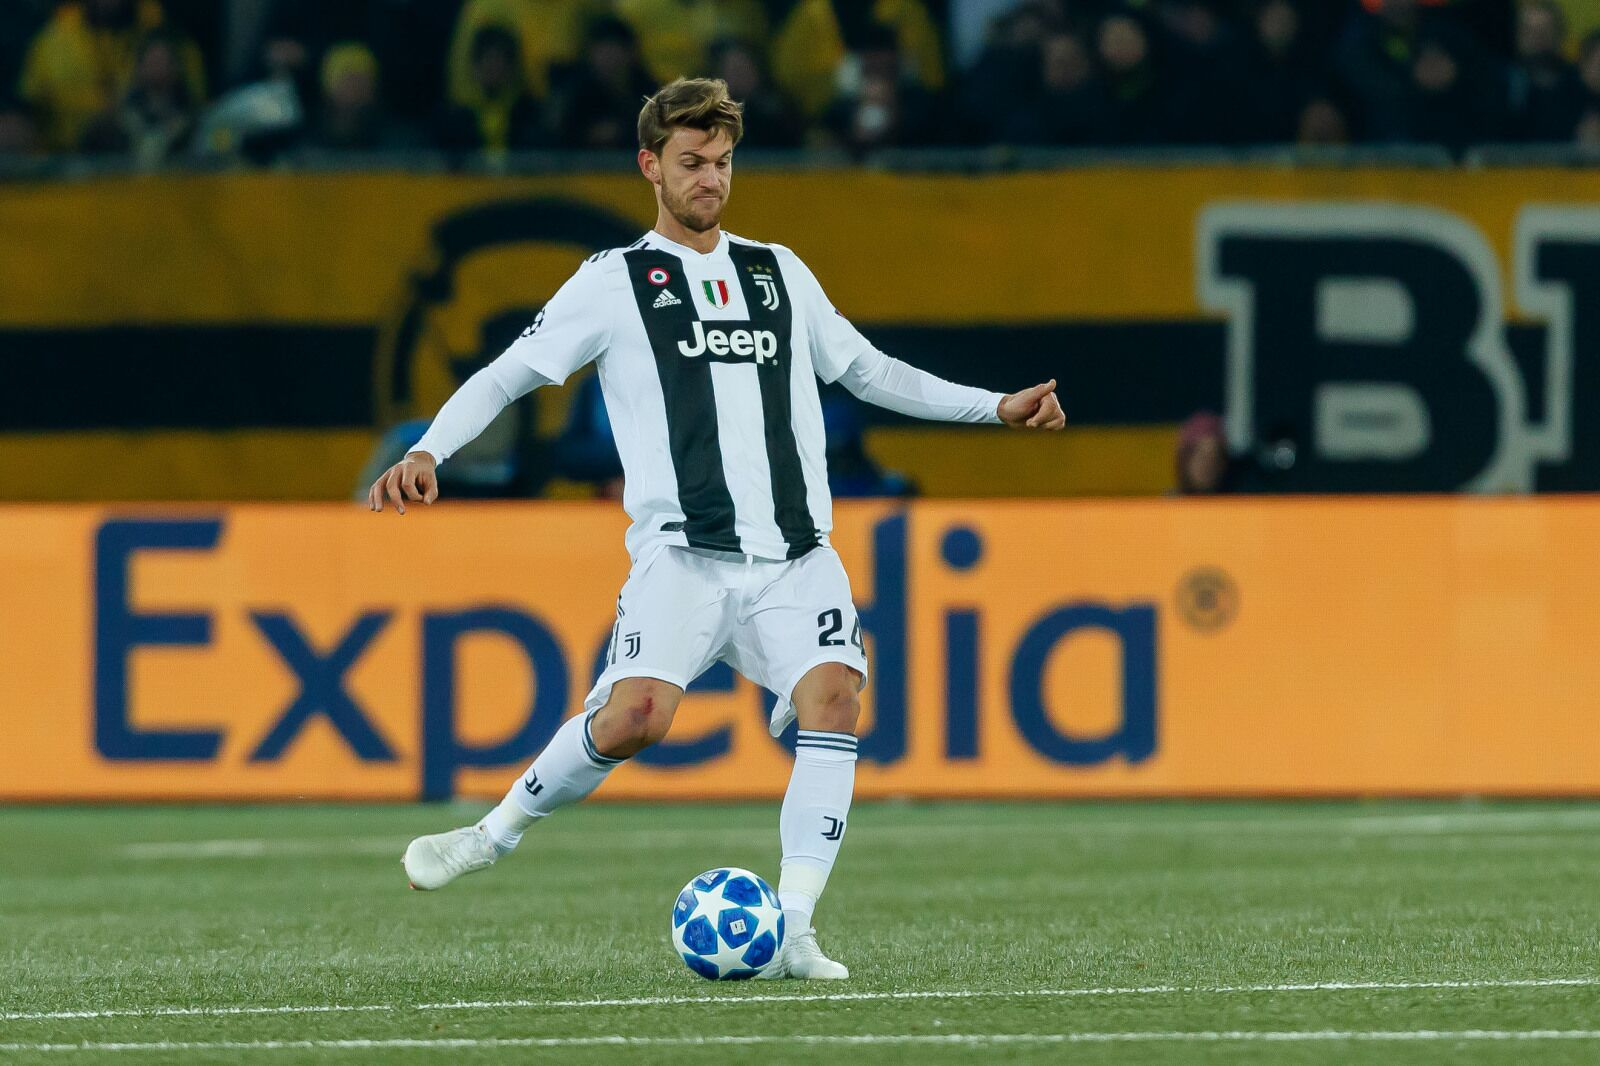 Trio of Juventus players still drawing interest from around Europe